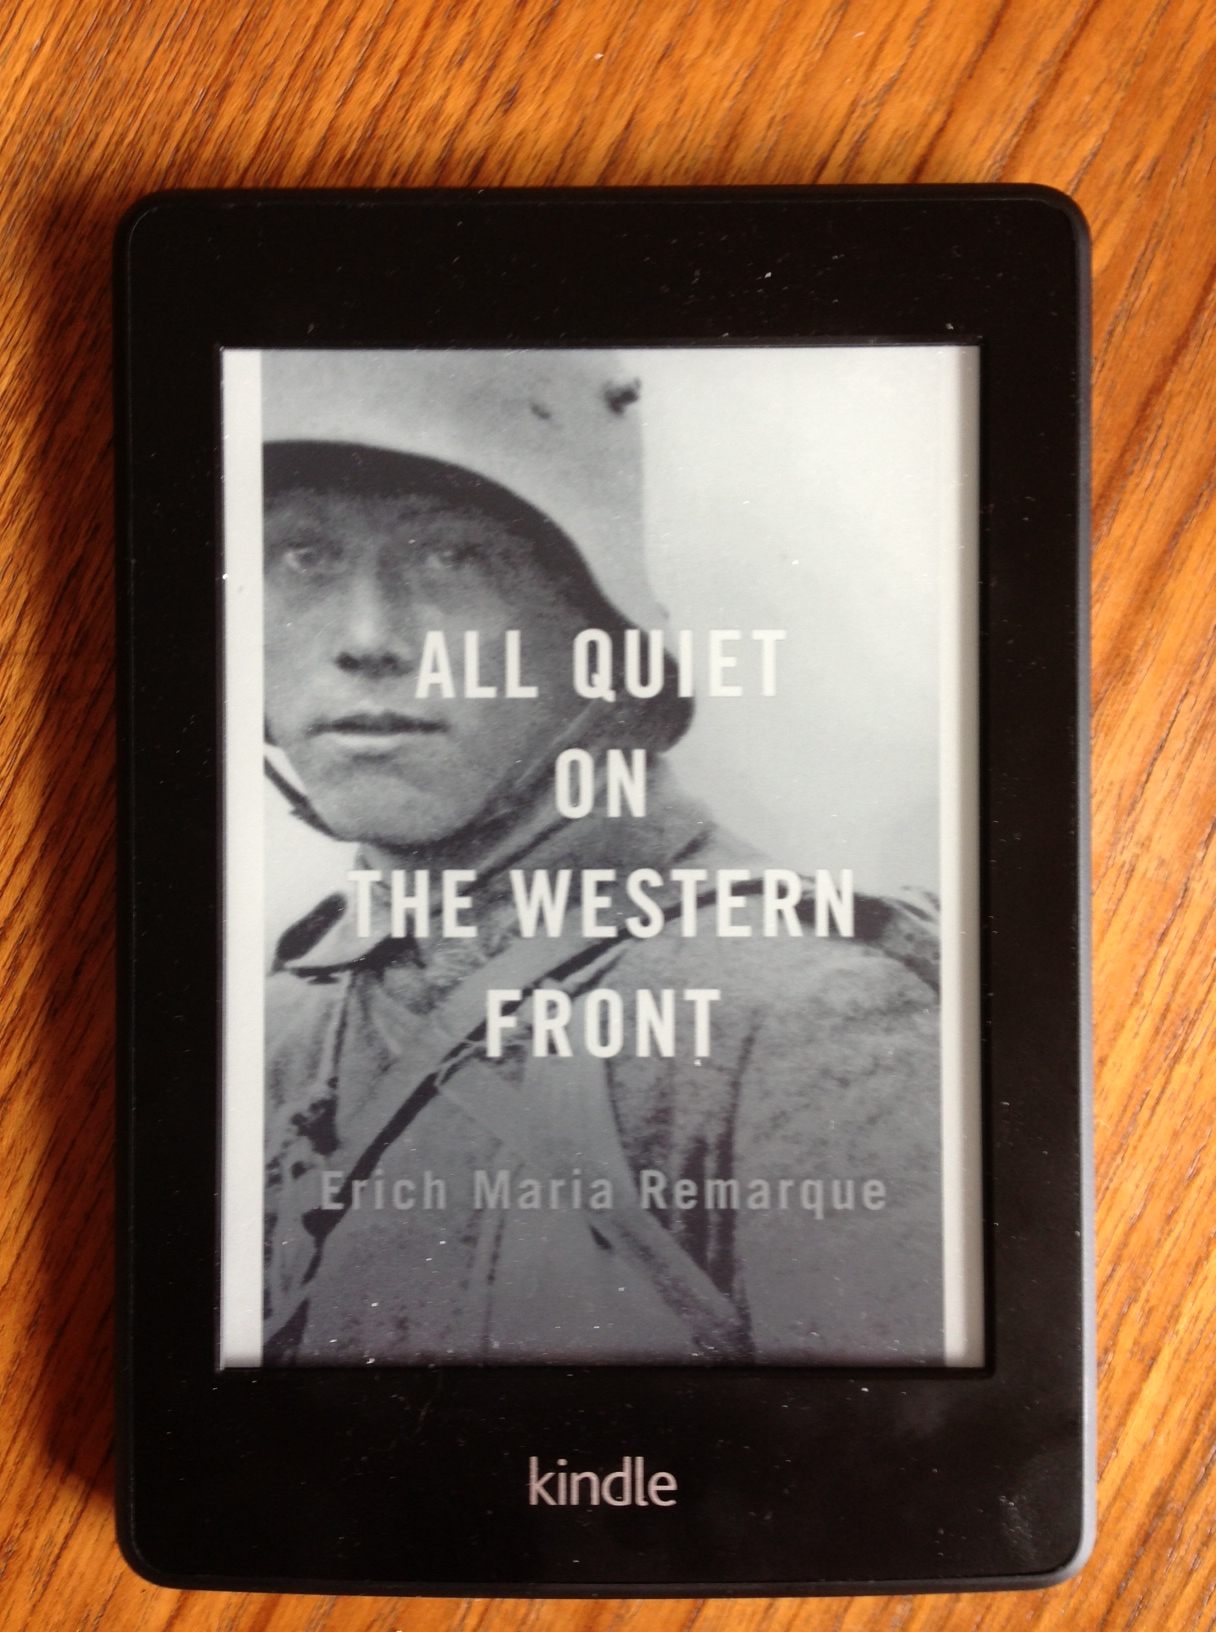 a report on all quiet on the western front a novel by erich maria remarque Erich maria remarque's novel follows paul bremer, a young man in the german infantry on the western front the novel, told in first person, opens at a point where paul has been at the front for a little more than a year, having joined in those first few months.